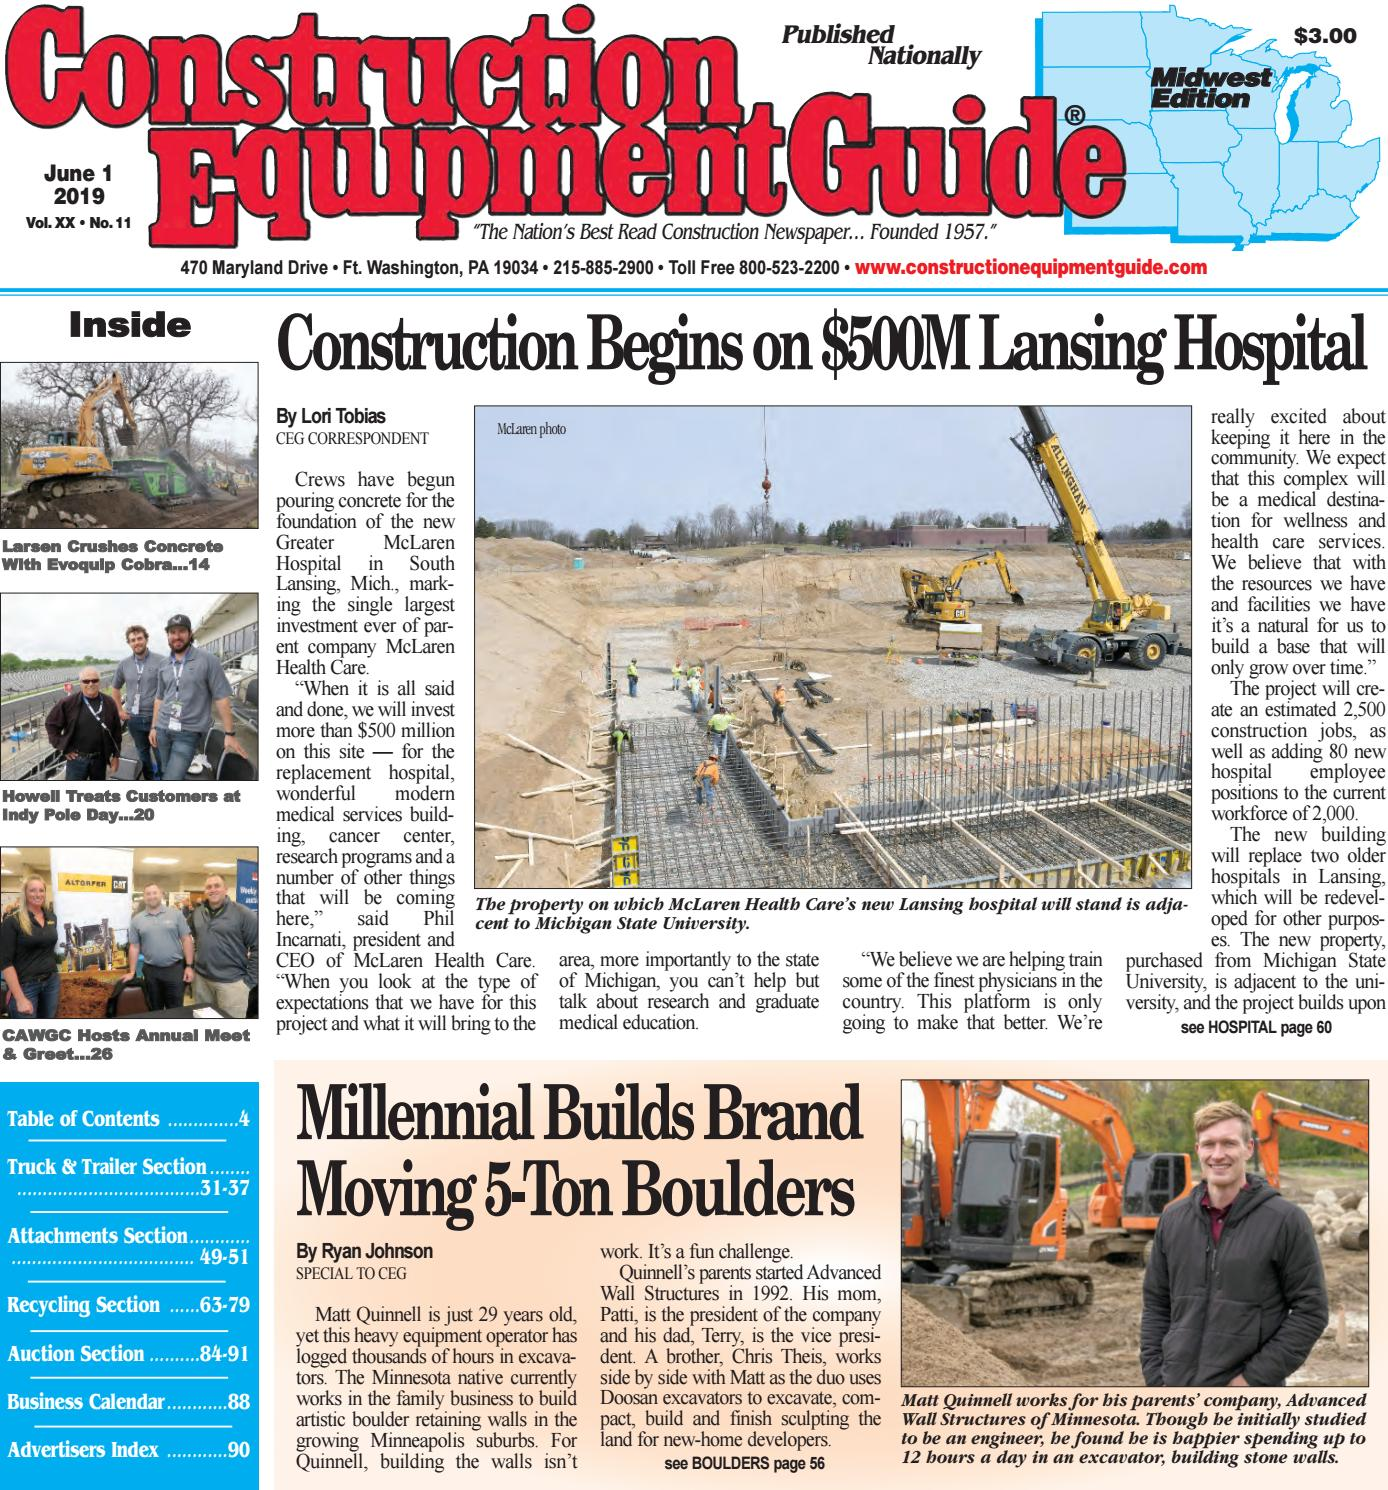 Midwest 11 June 1, 2019 by Construction Equipment Guide - issuu